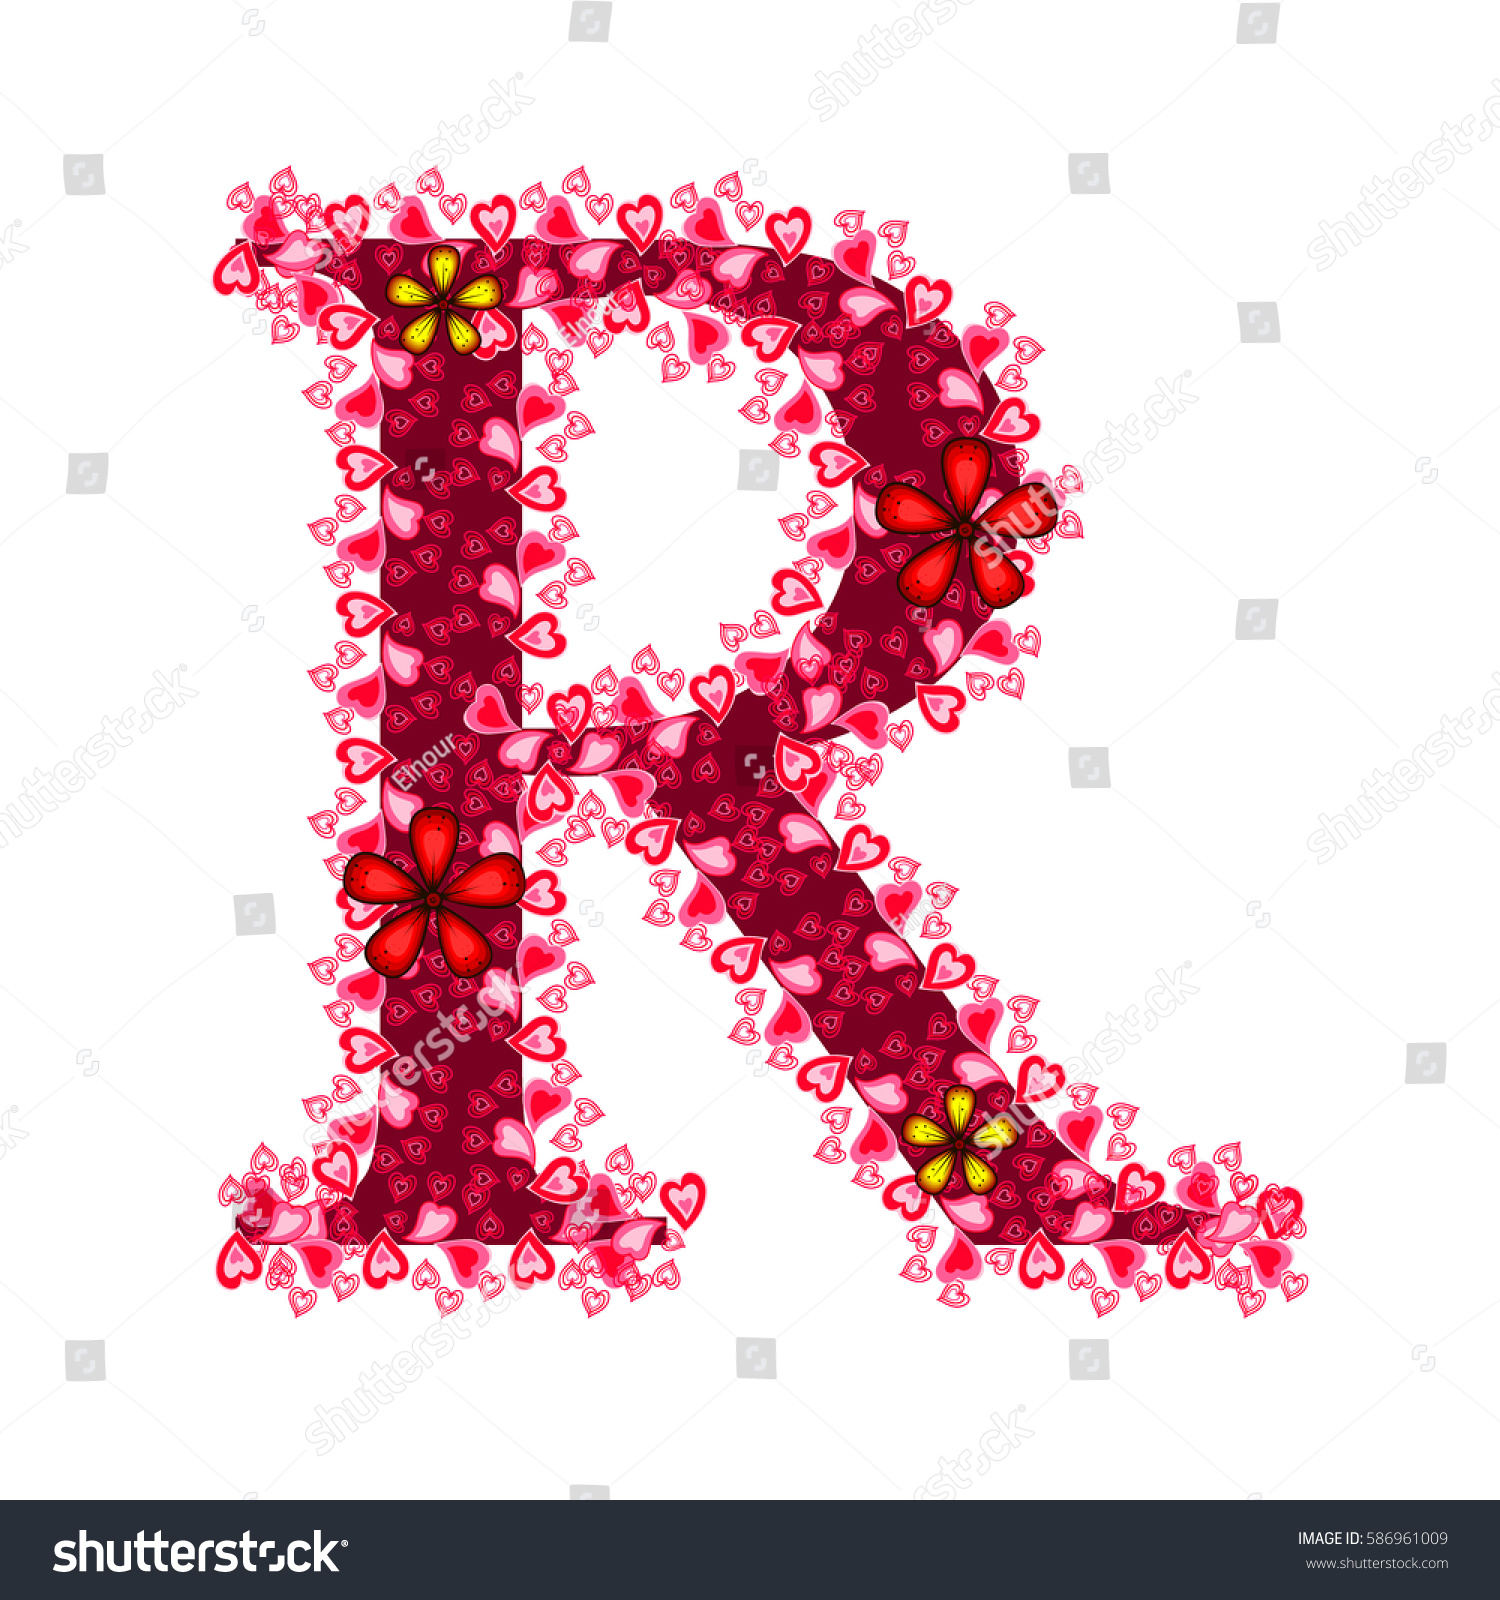 Alphabet Hearts R Red Letter Hearts Stock Vector (Royalty Free ...